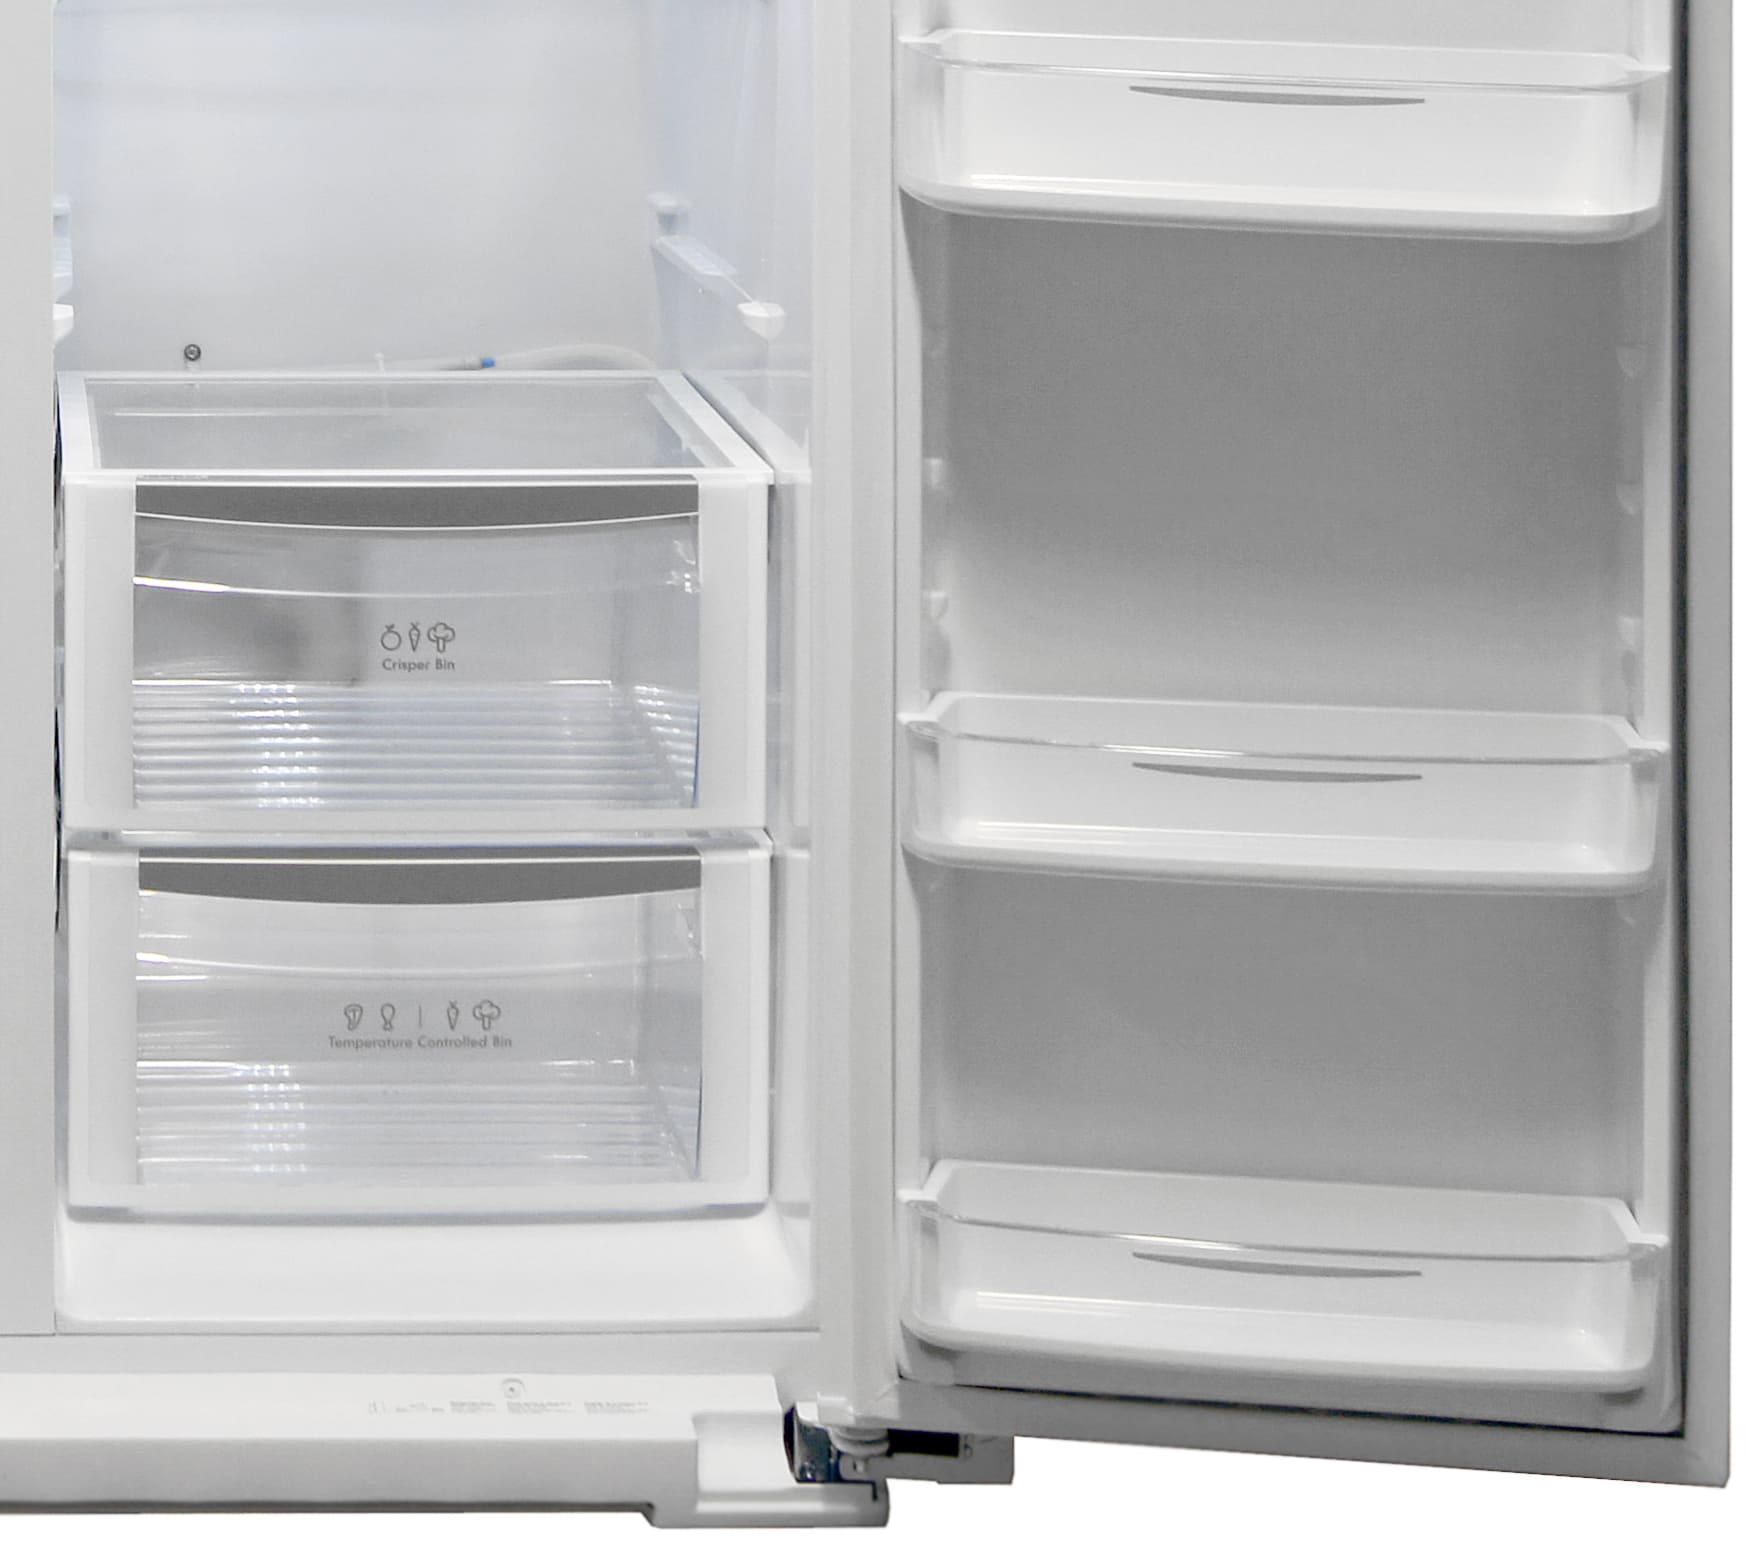 The Kenmore Elite 51162's crisper and temperature drawer are found at the bottom of the fridge, with some extra shelf storage on the door.